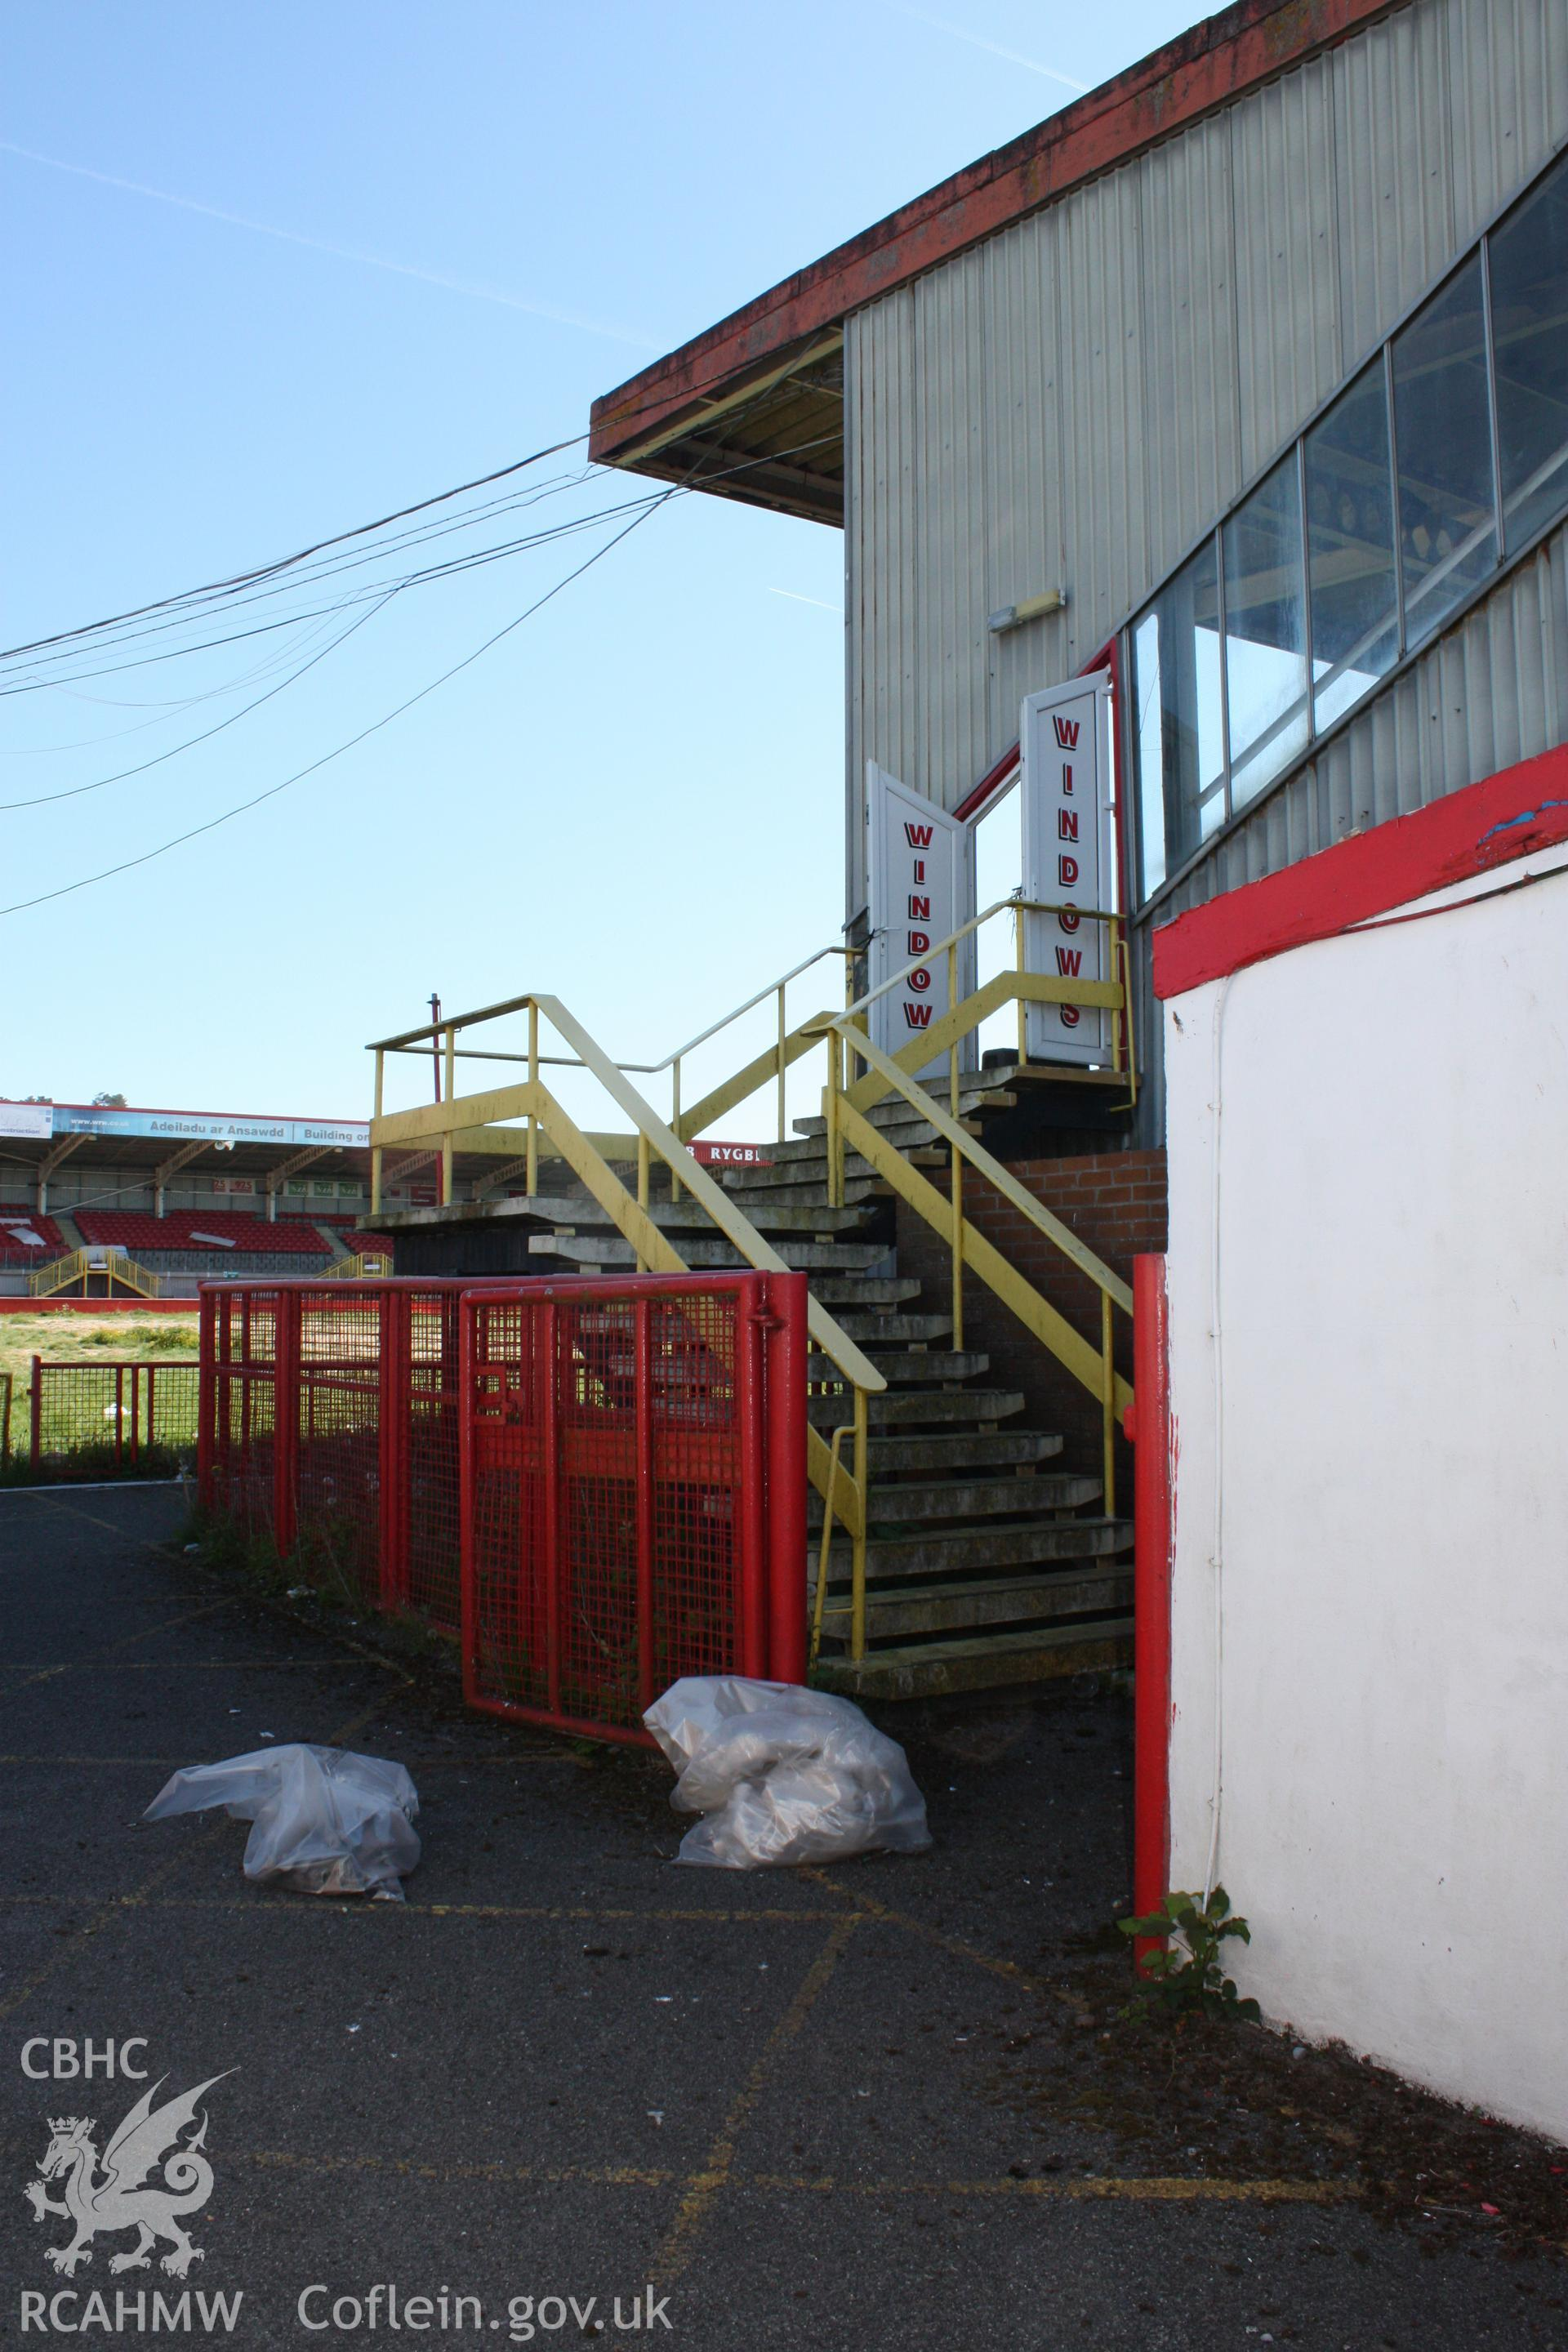 Stairs to upper levels at west end of Grand (South) Stand